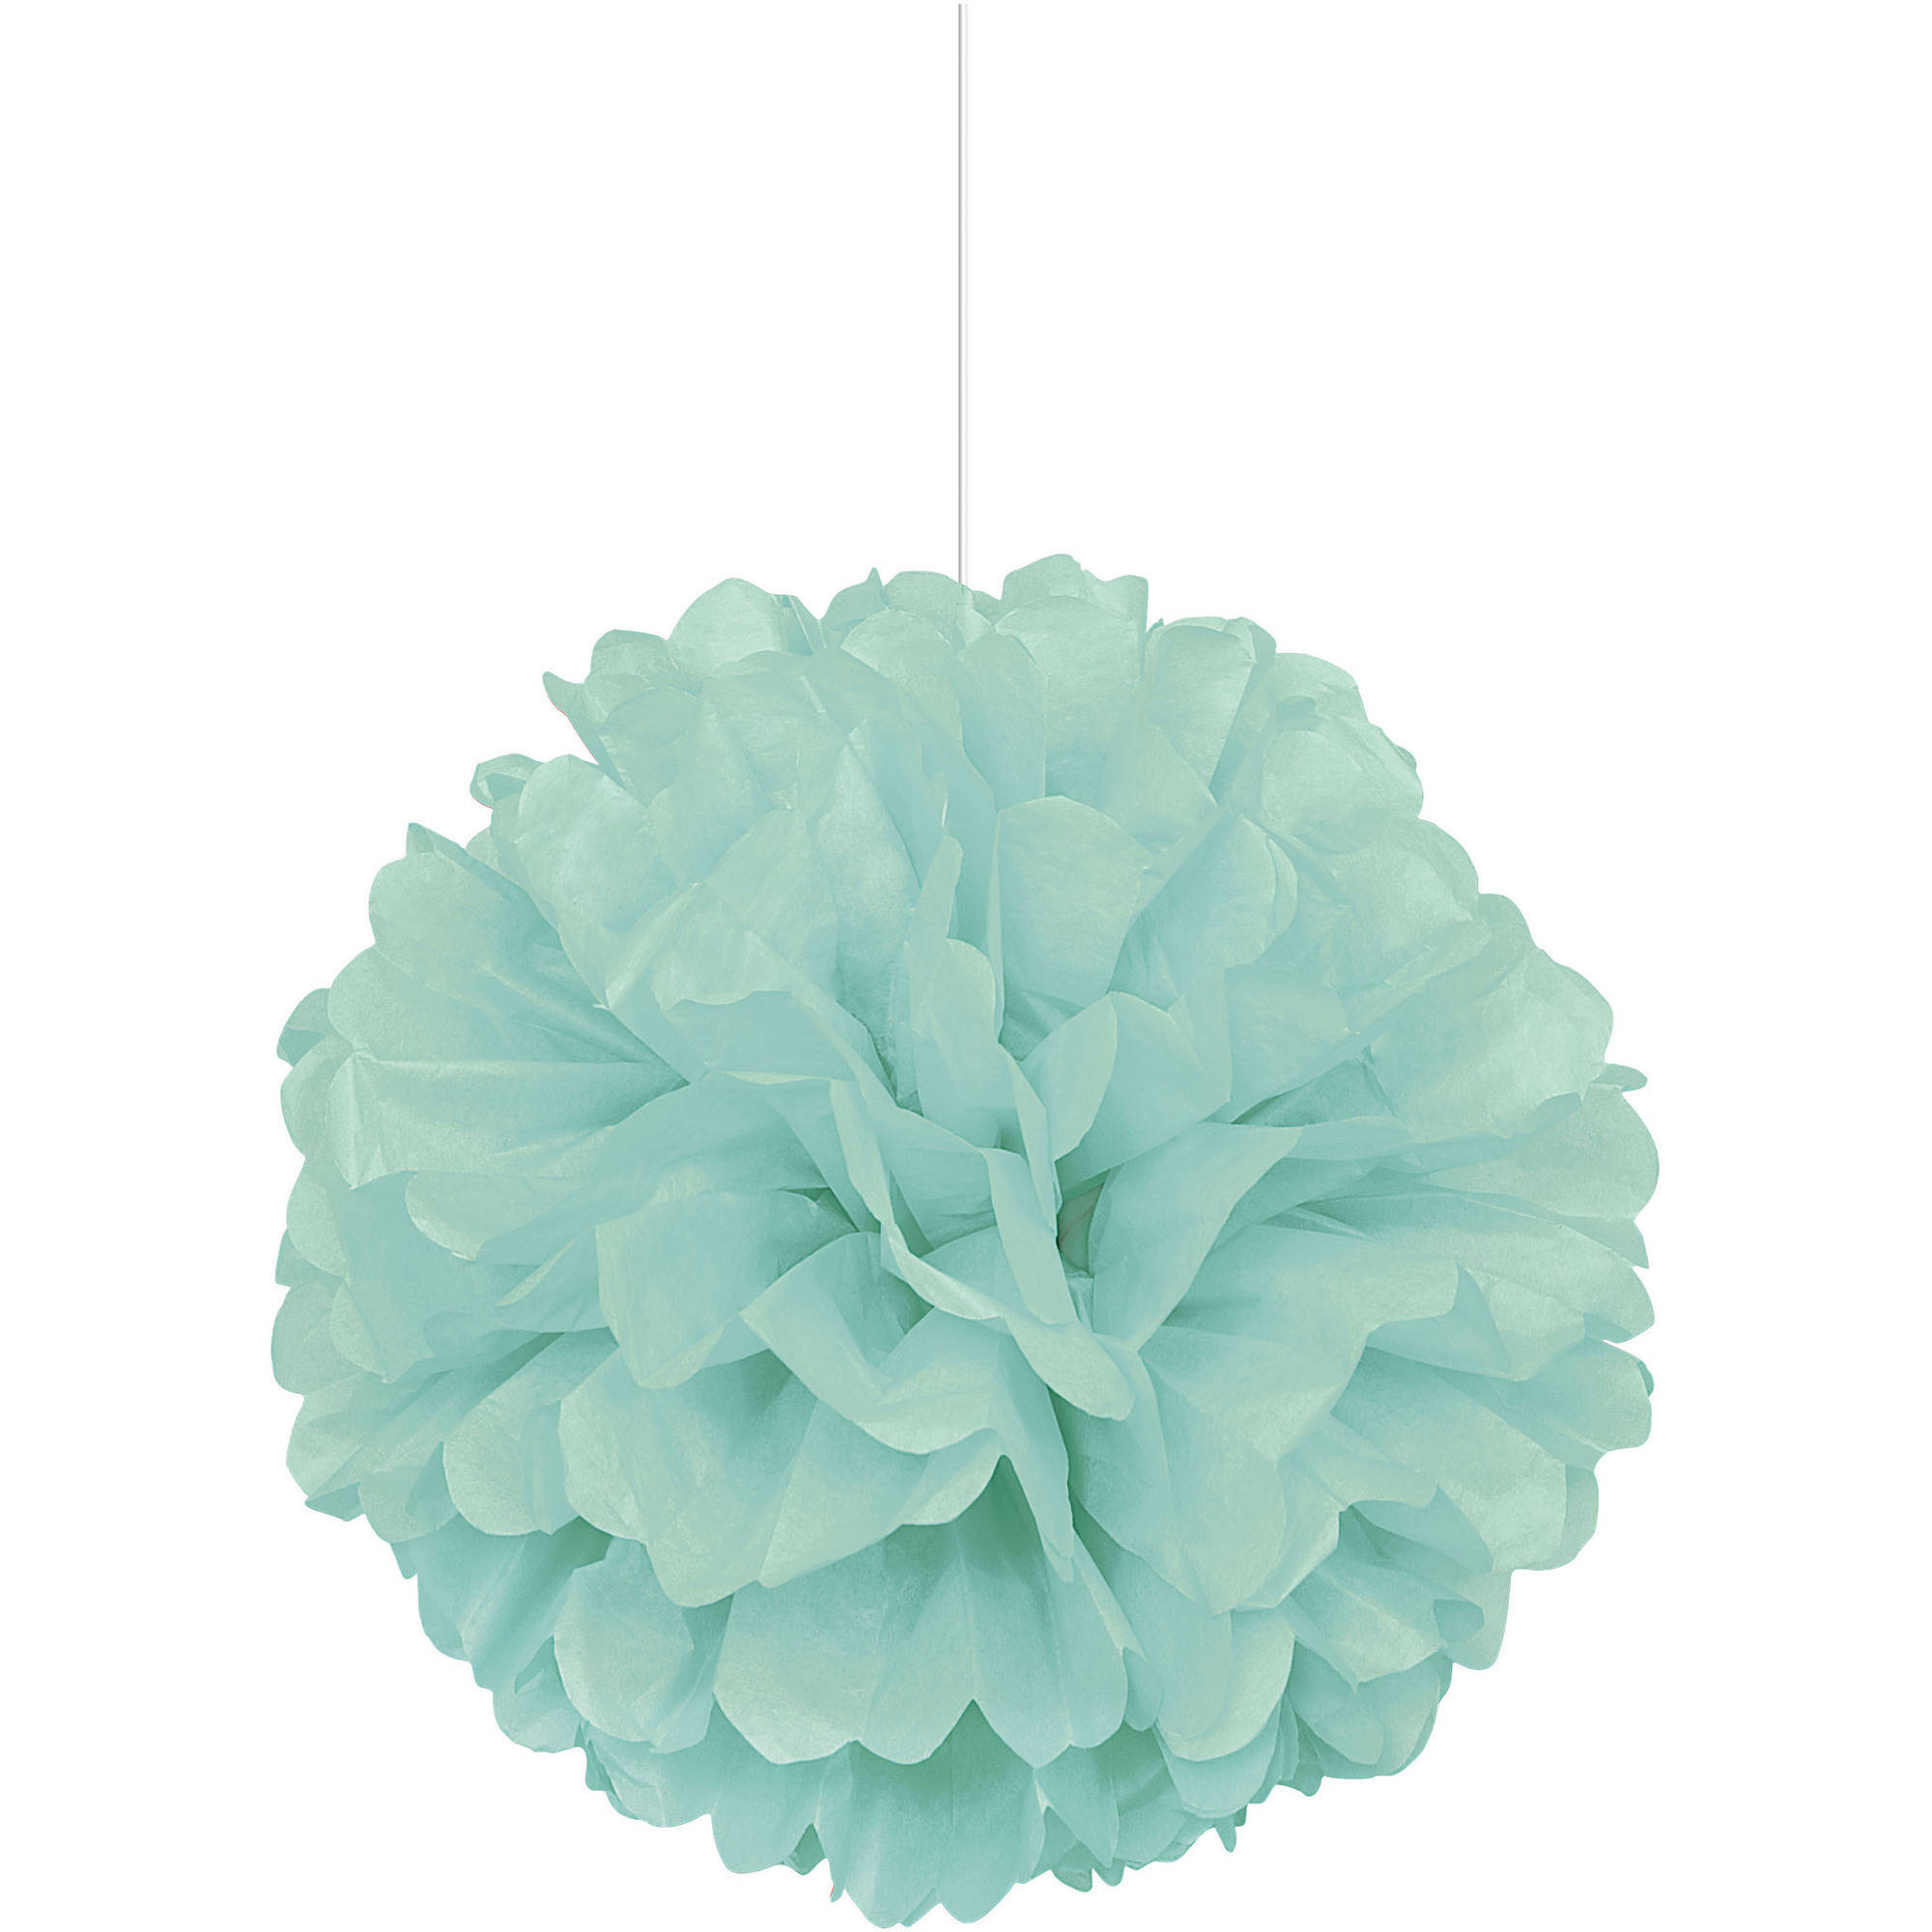 Tissue Paper Pom Pom, 16 in, Mint Green, 1ct